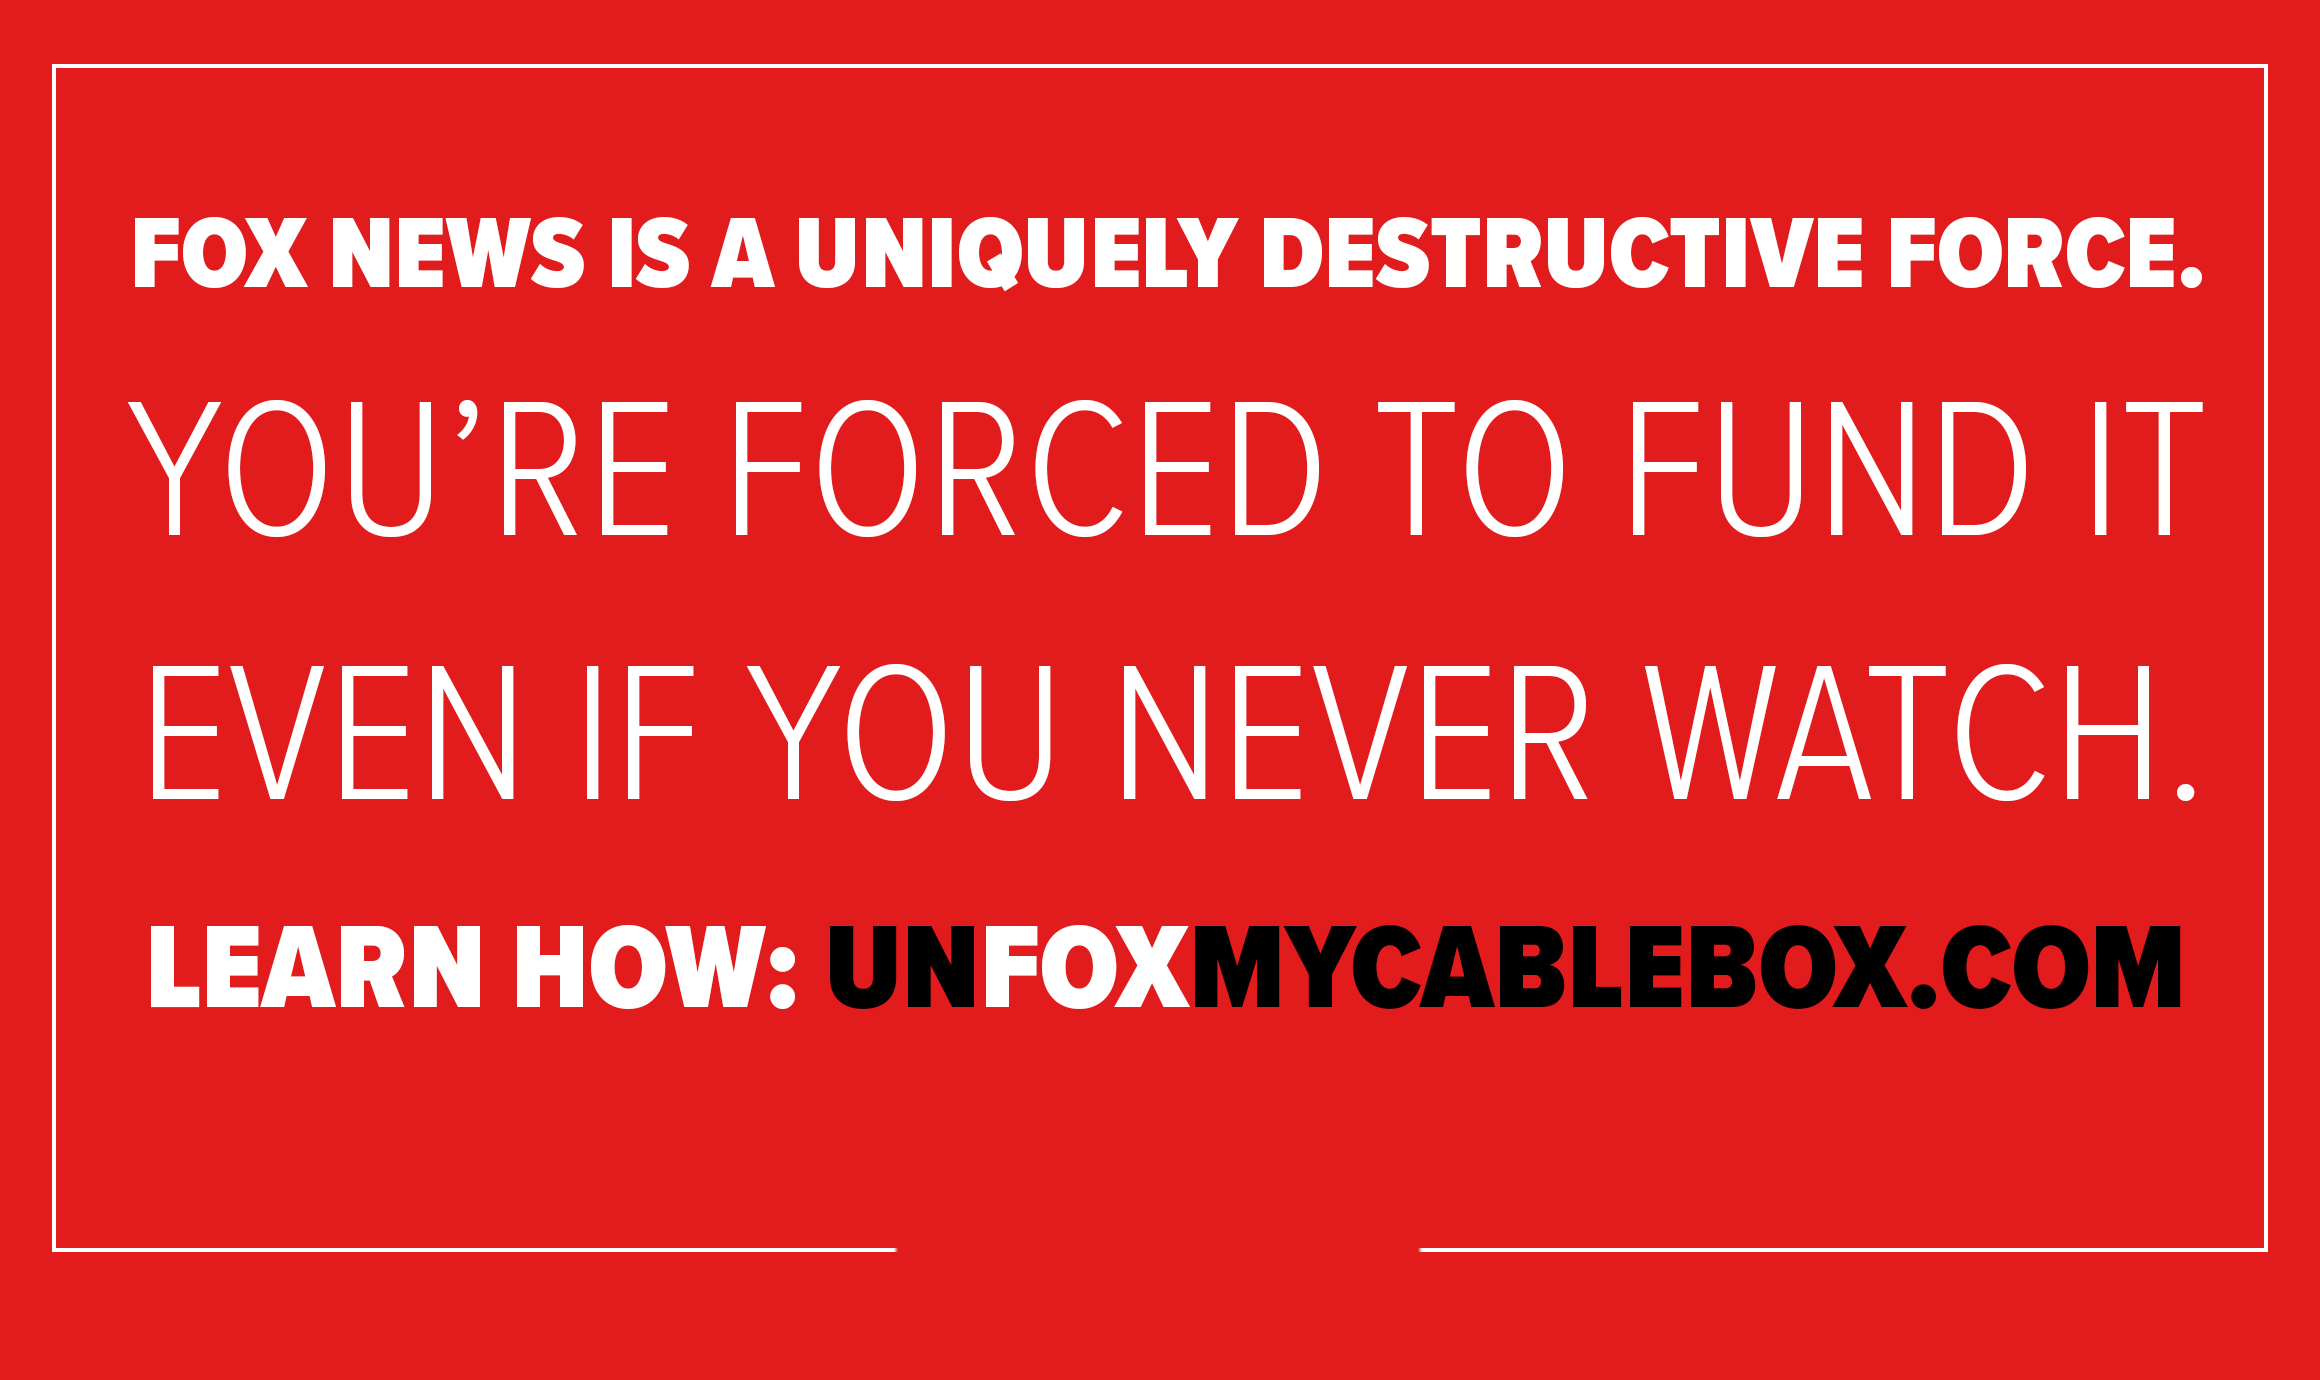 Fox News is a uniquely destructive force. You're forced to fund it even if you never watch. Learn How: unfoxmycablebox.com